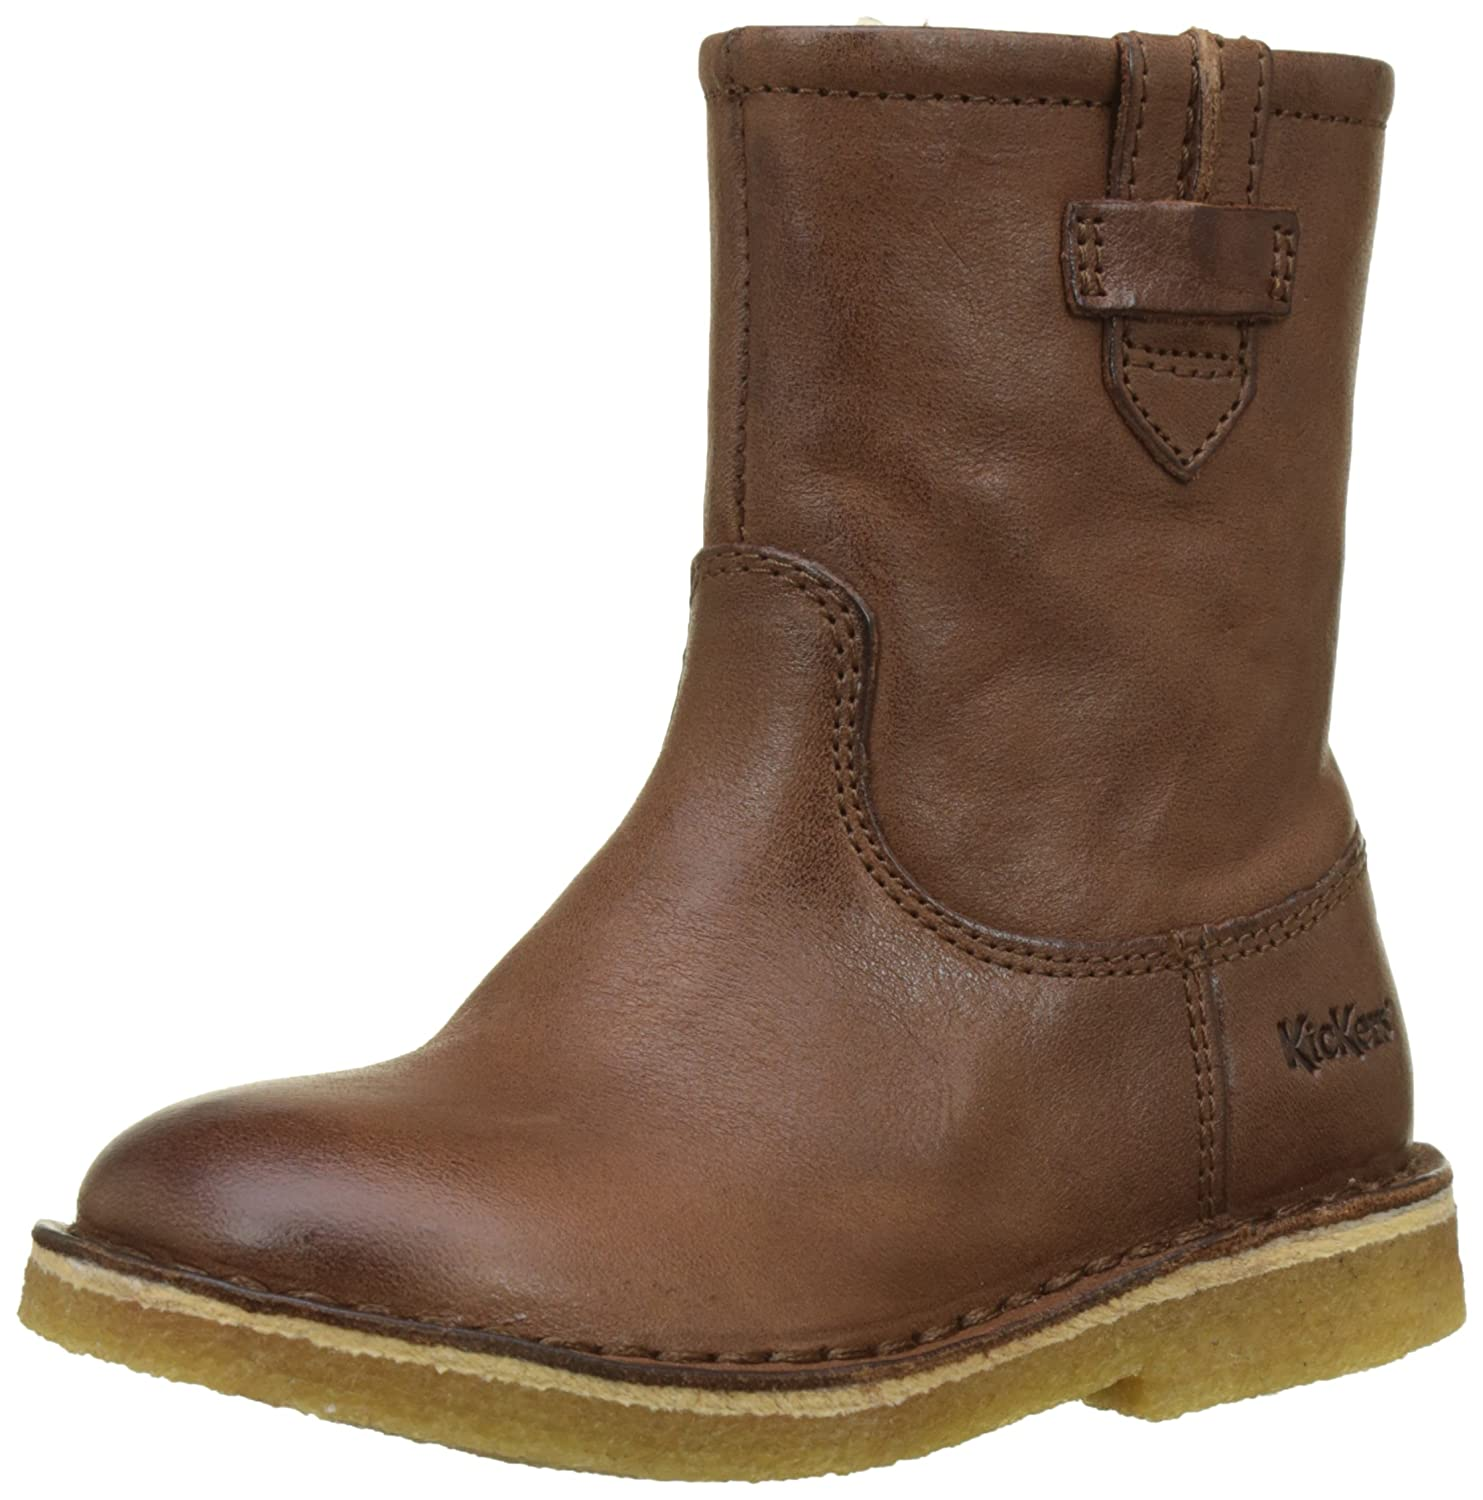 Kickers Cressona, (Marron Botines Fille 31 EU|Marron (Marron Cressona, 9) 55a489